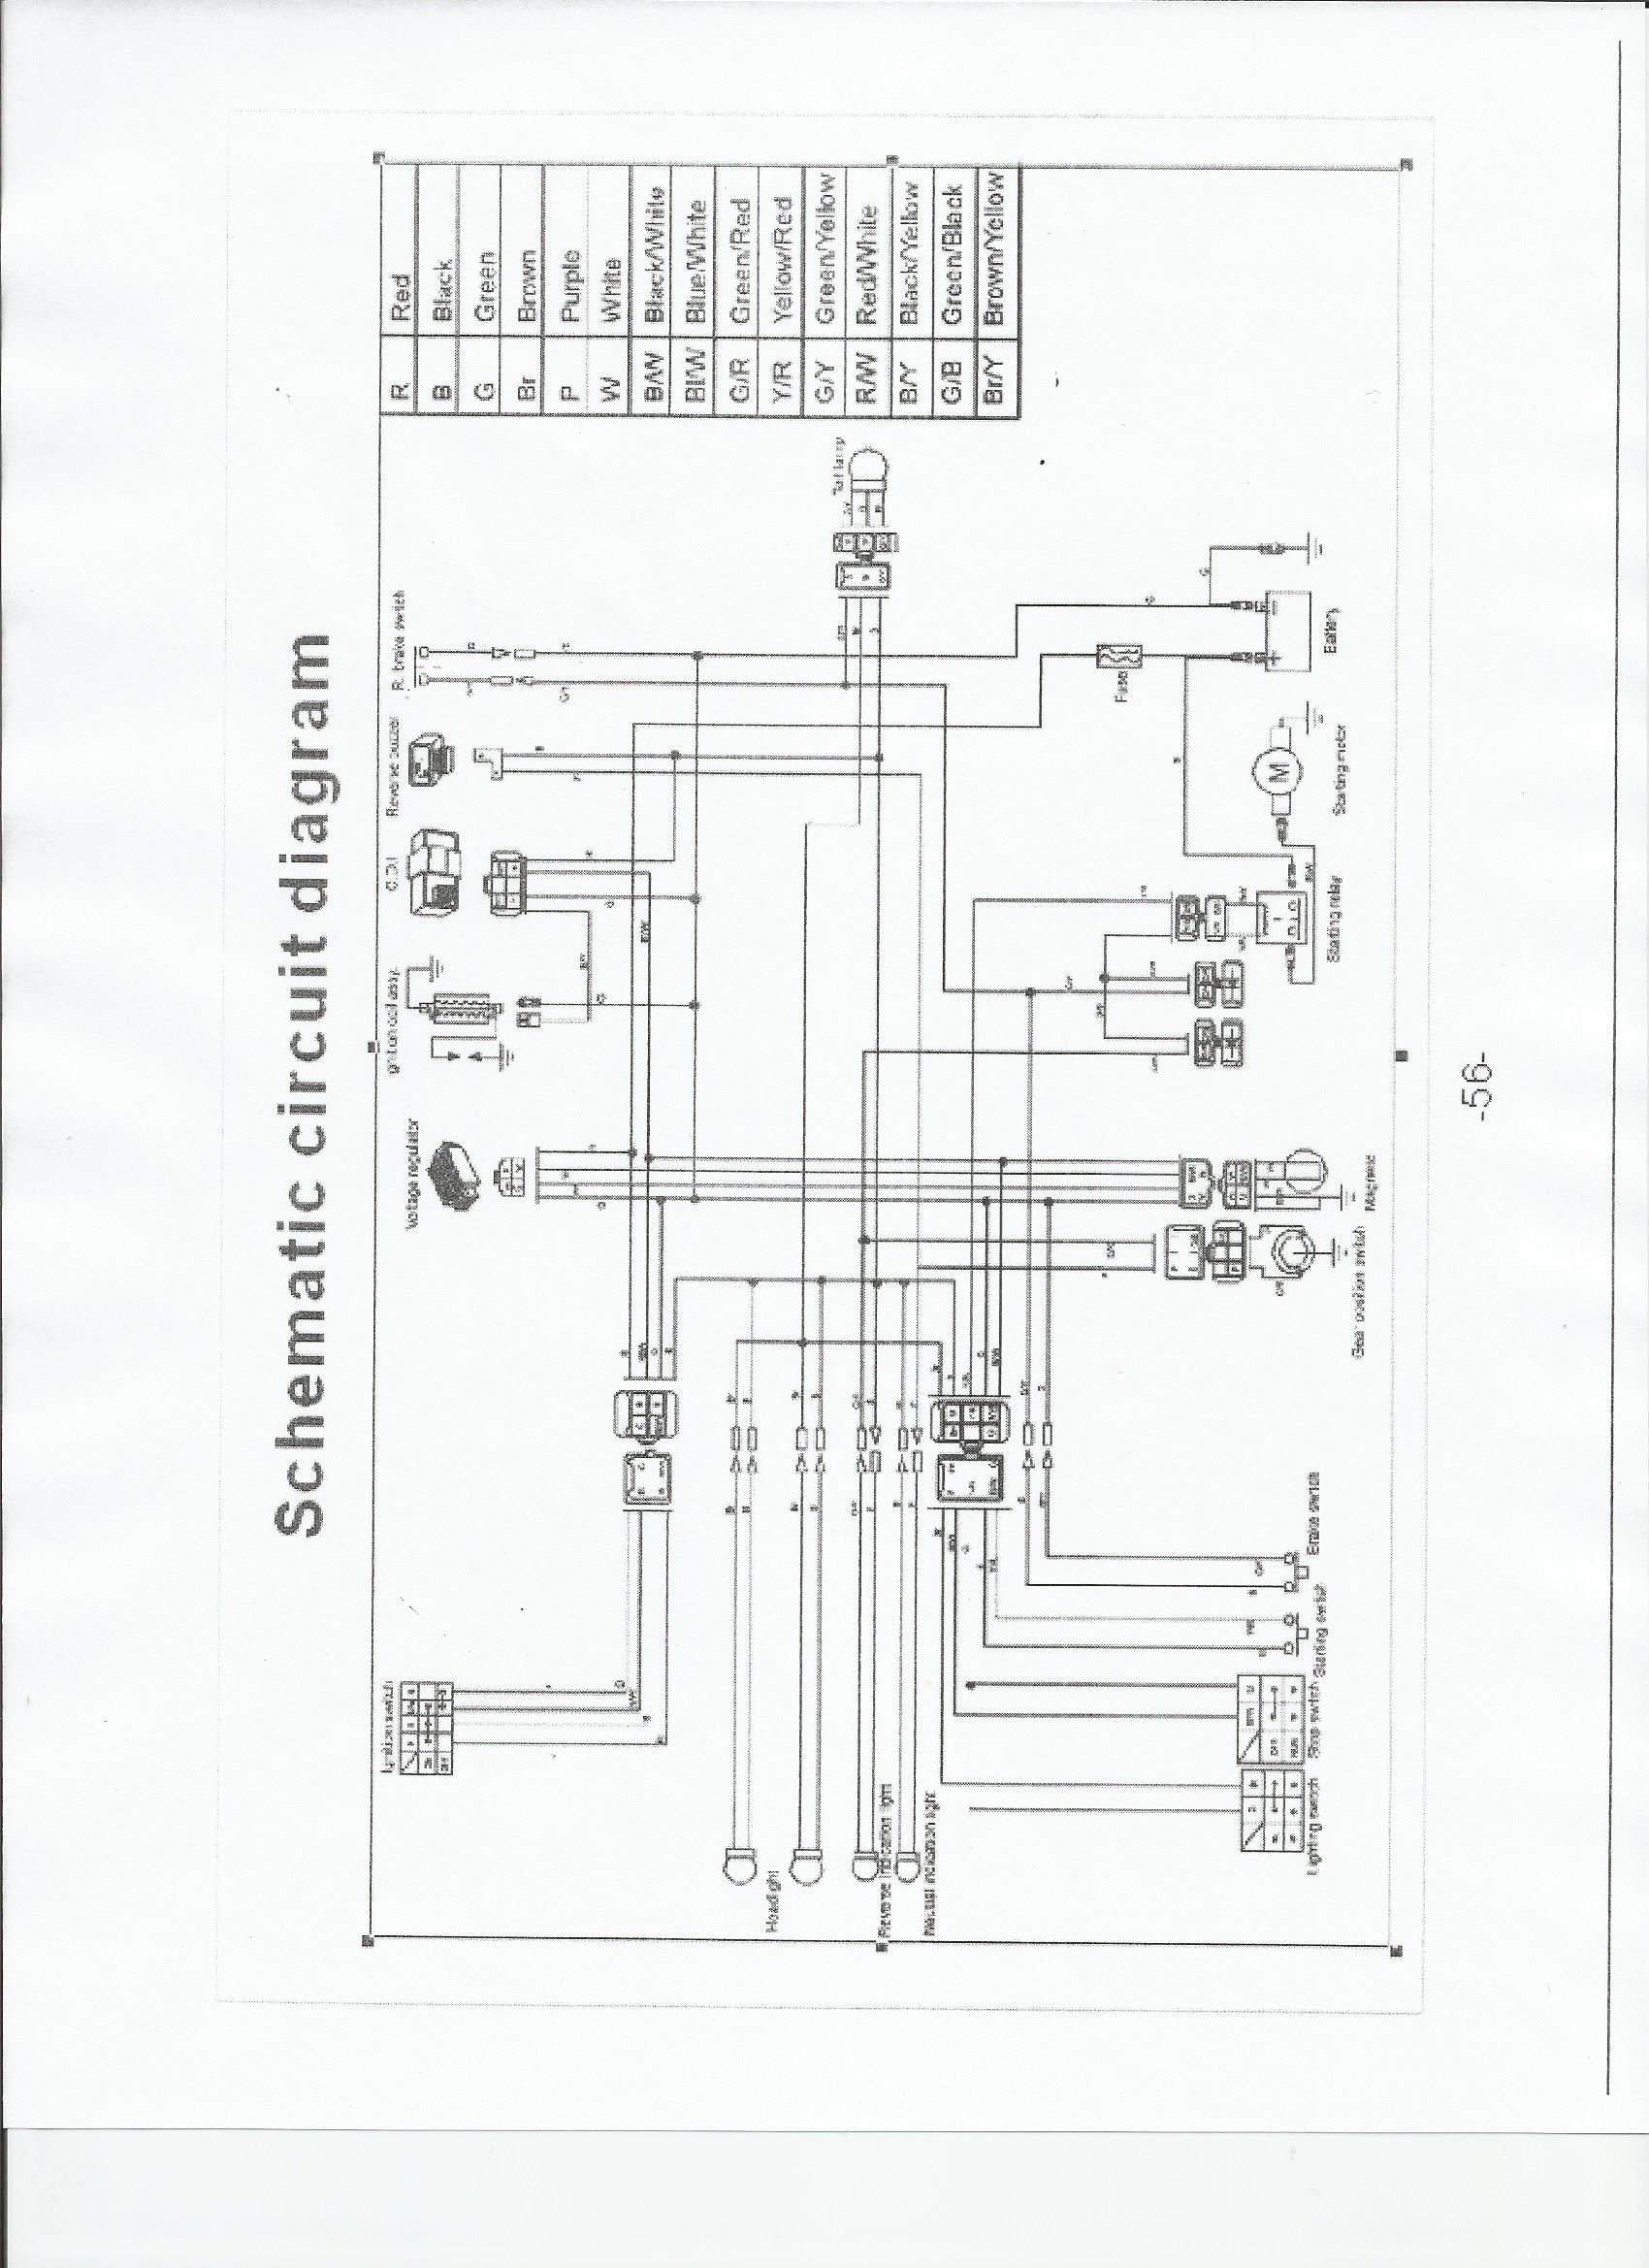 taotao mini and youth atv wiring schematic familygokarts support tao tao wiring schematic jpg